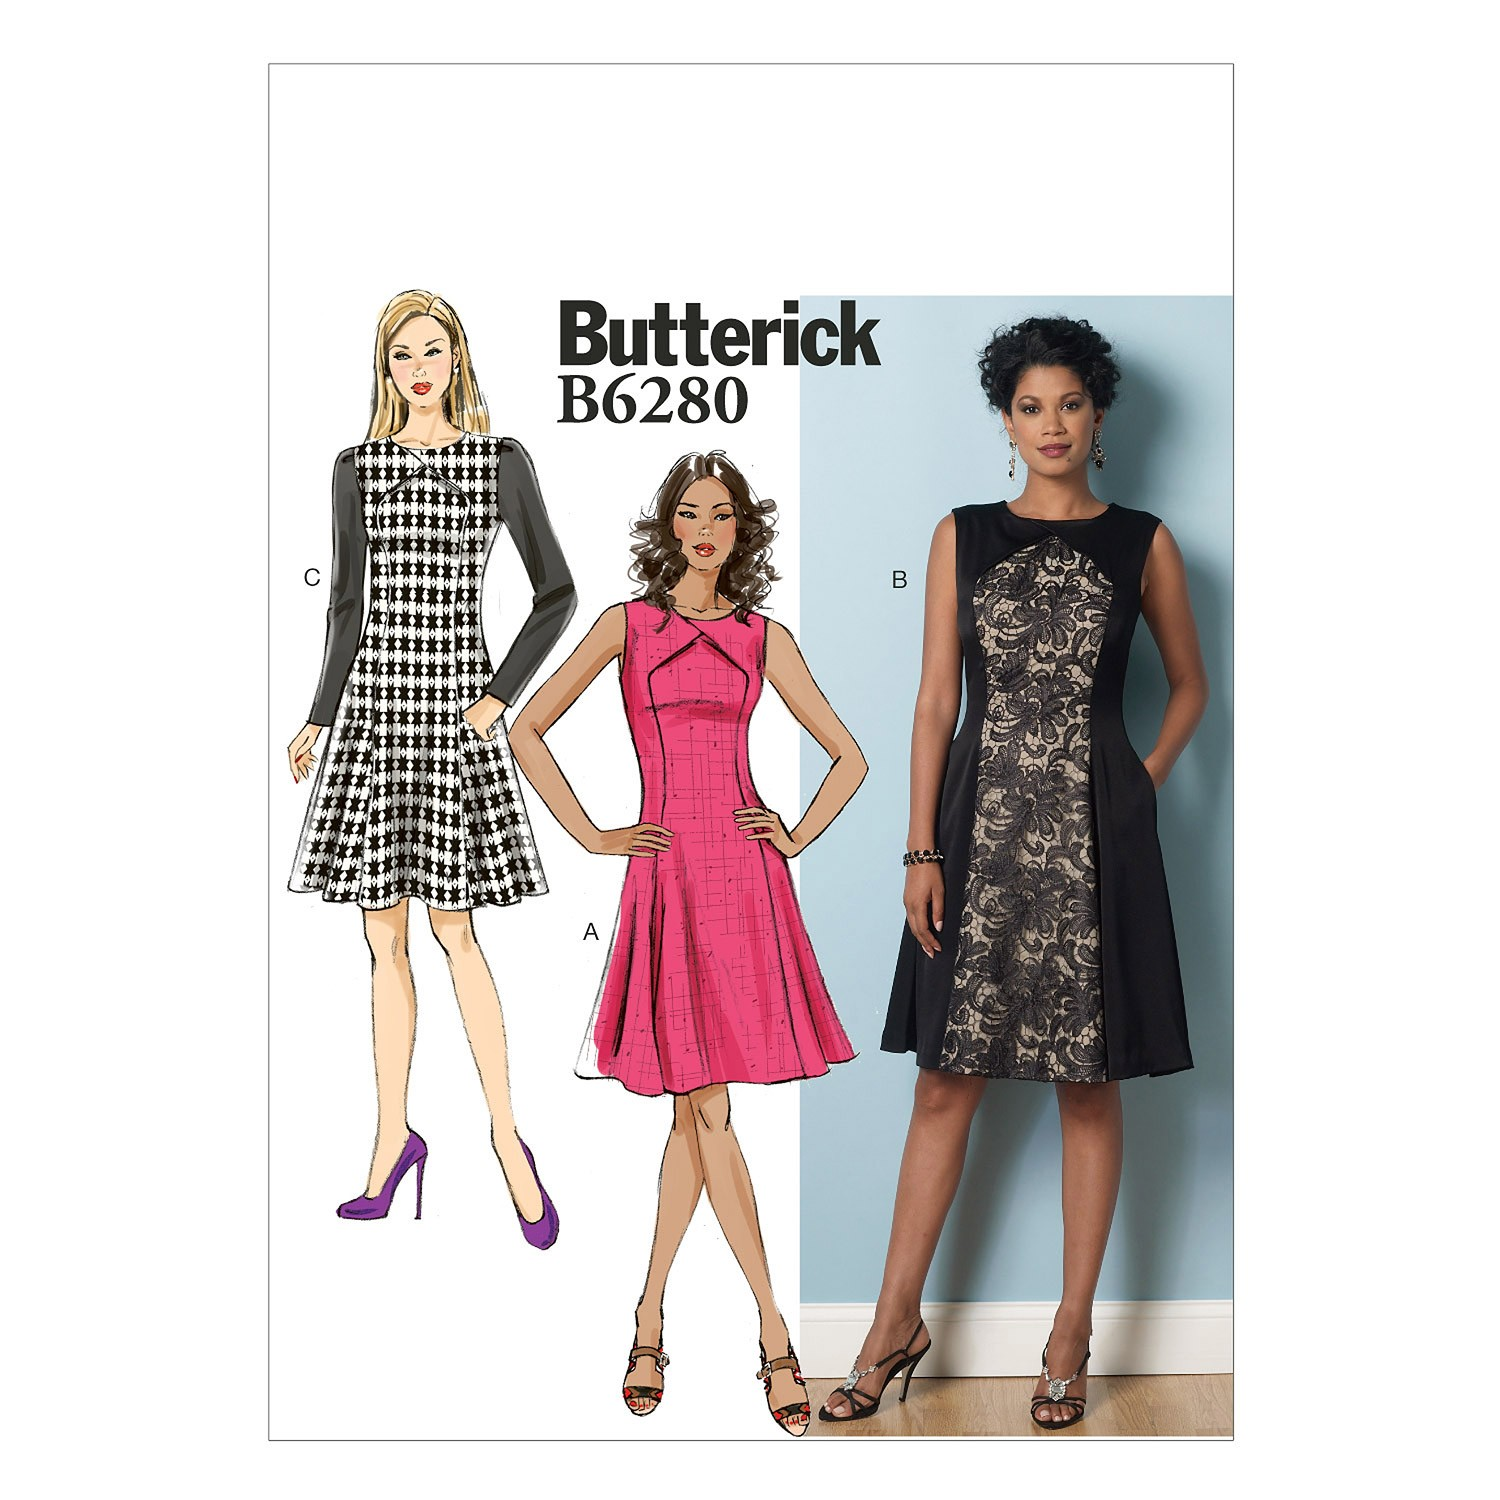 Butterick Sewing Pattern 6280 Misses' Petite Short Dress